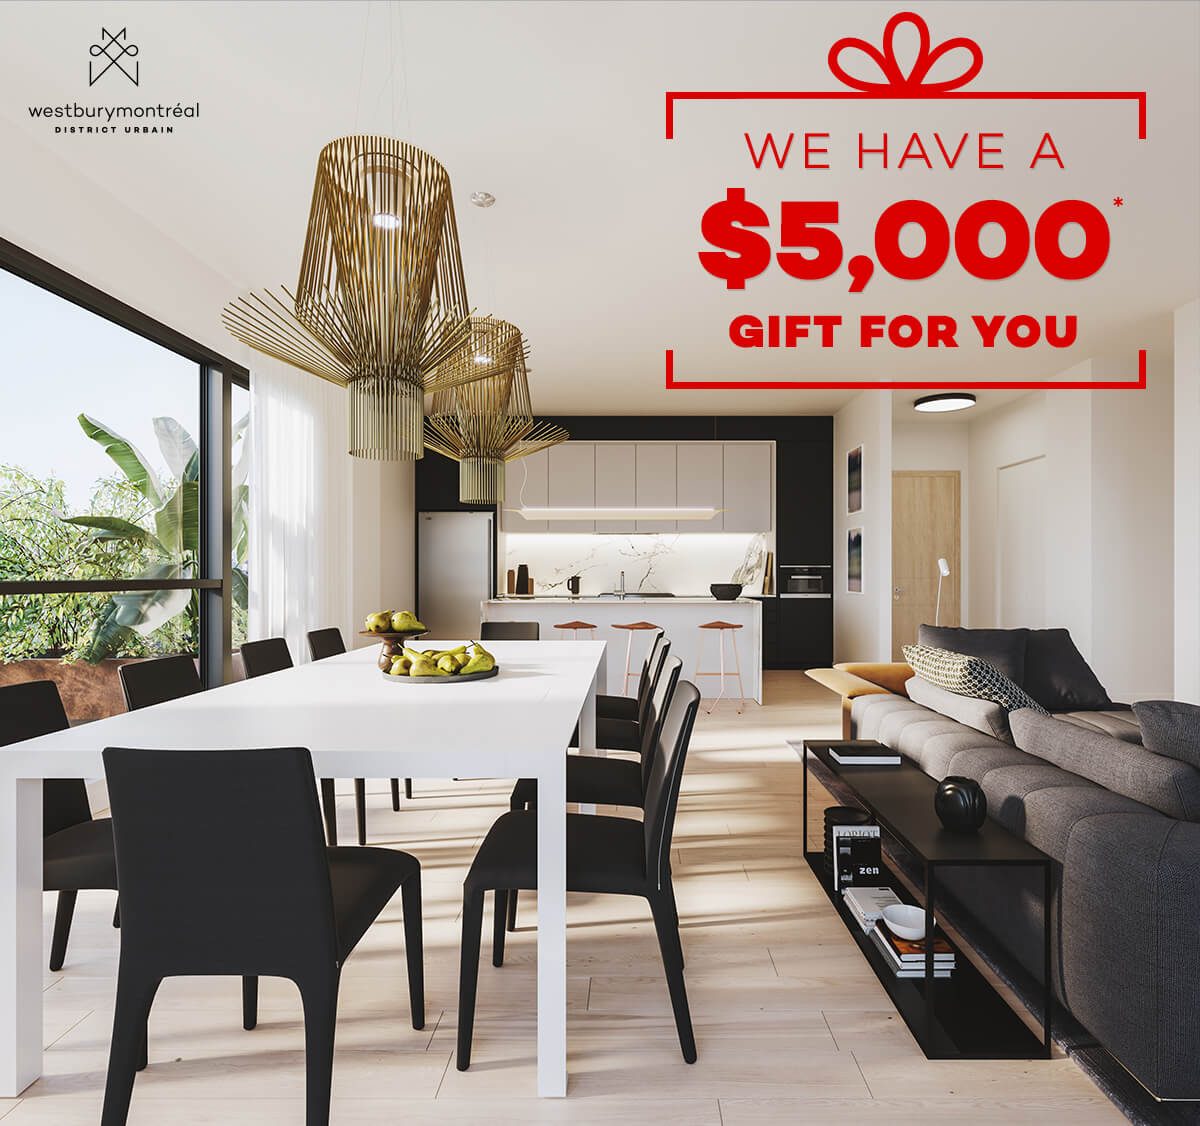 We have a $5,000 gift for you